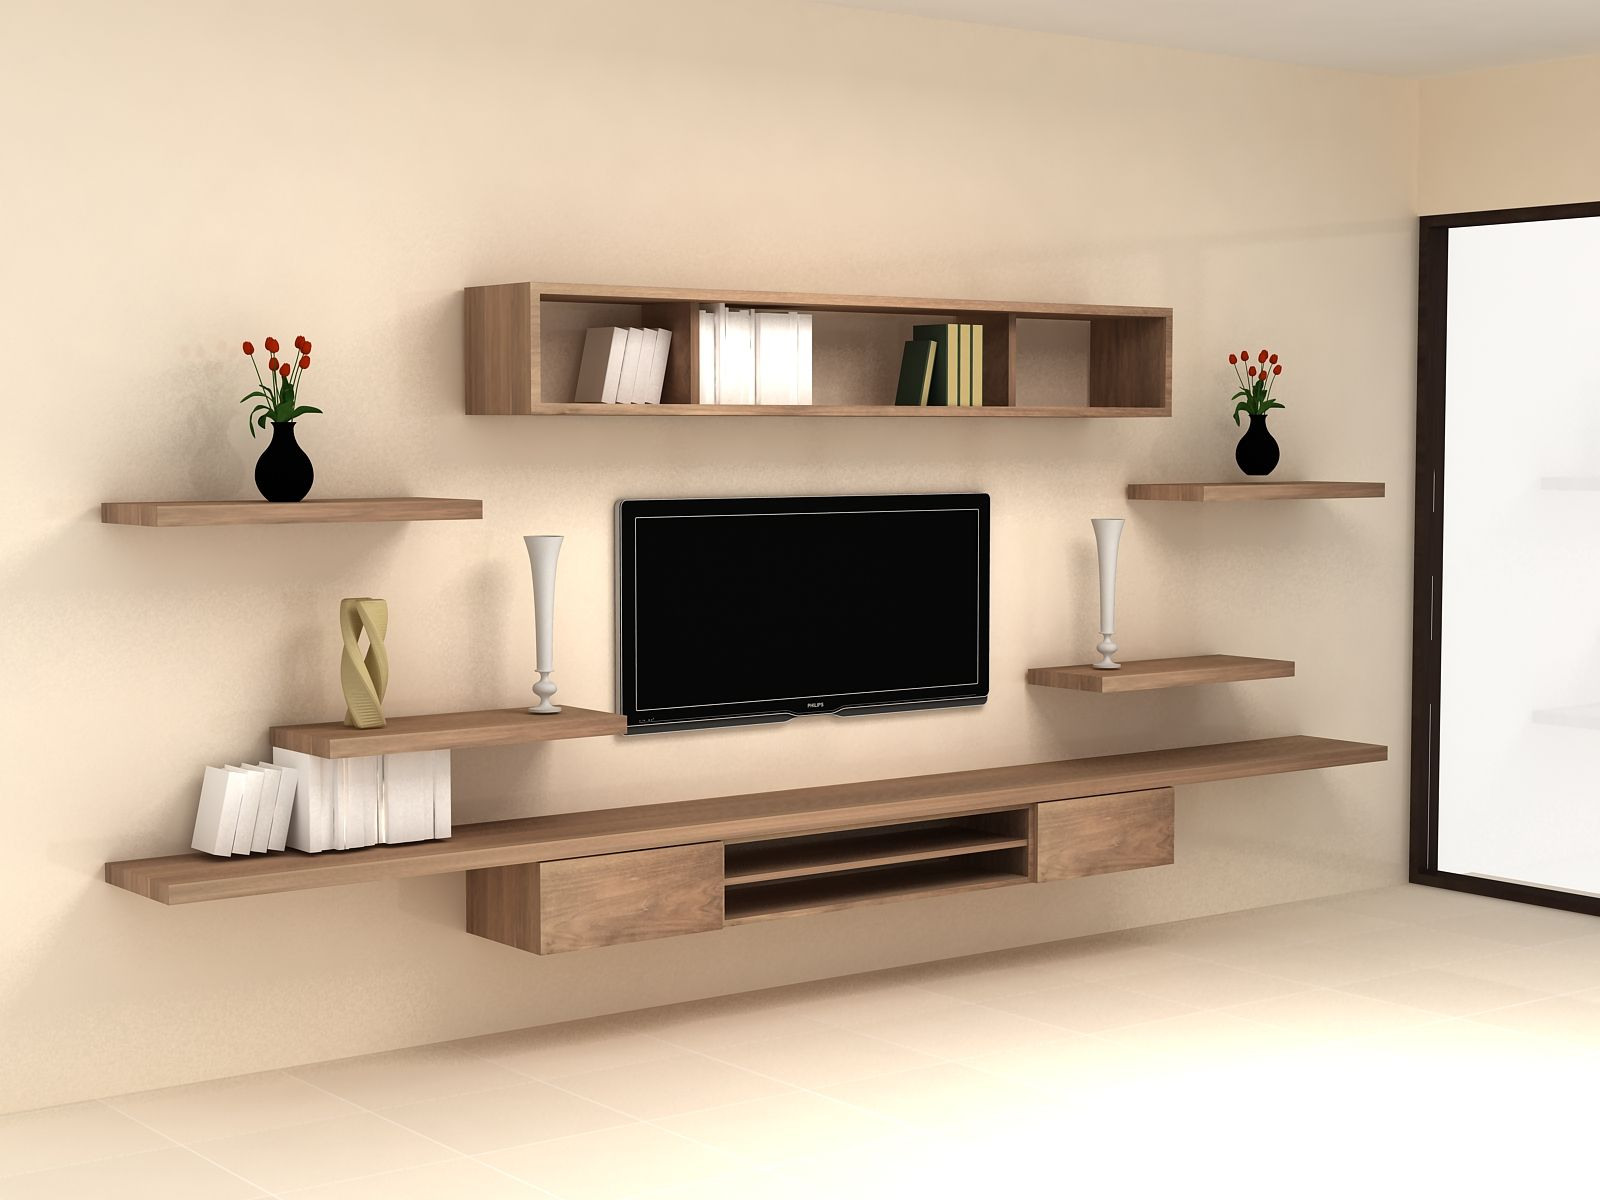 Wall hung tv cabinet 1 pinteres for Living room tv furniture ideas